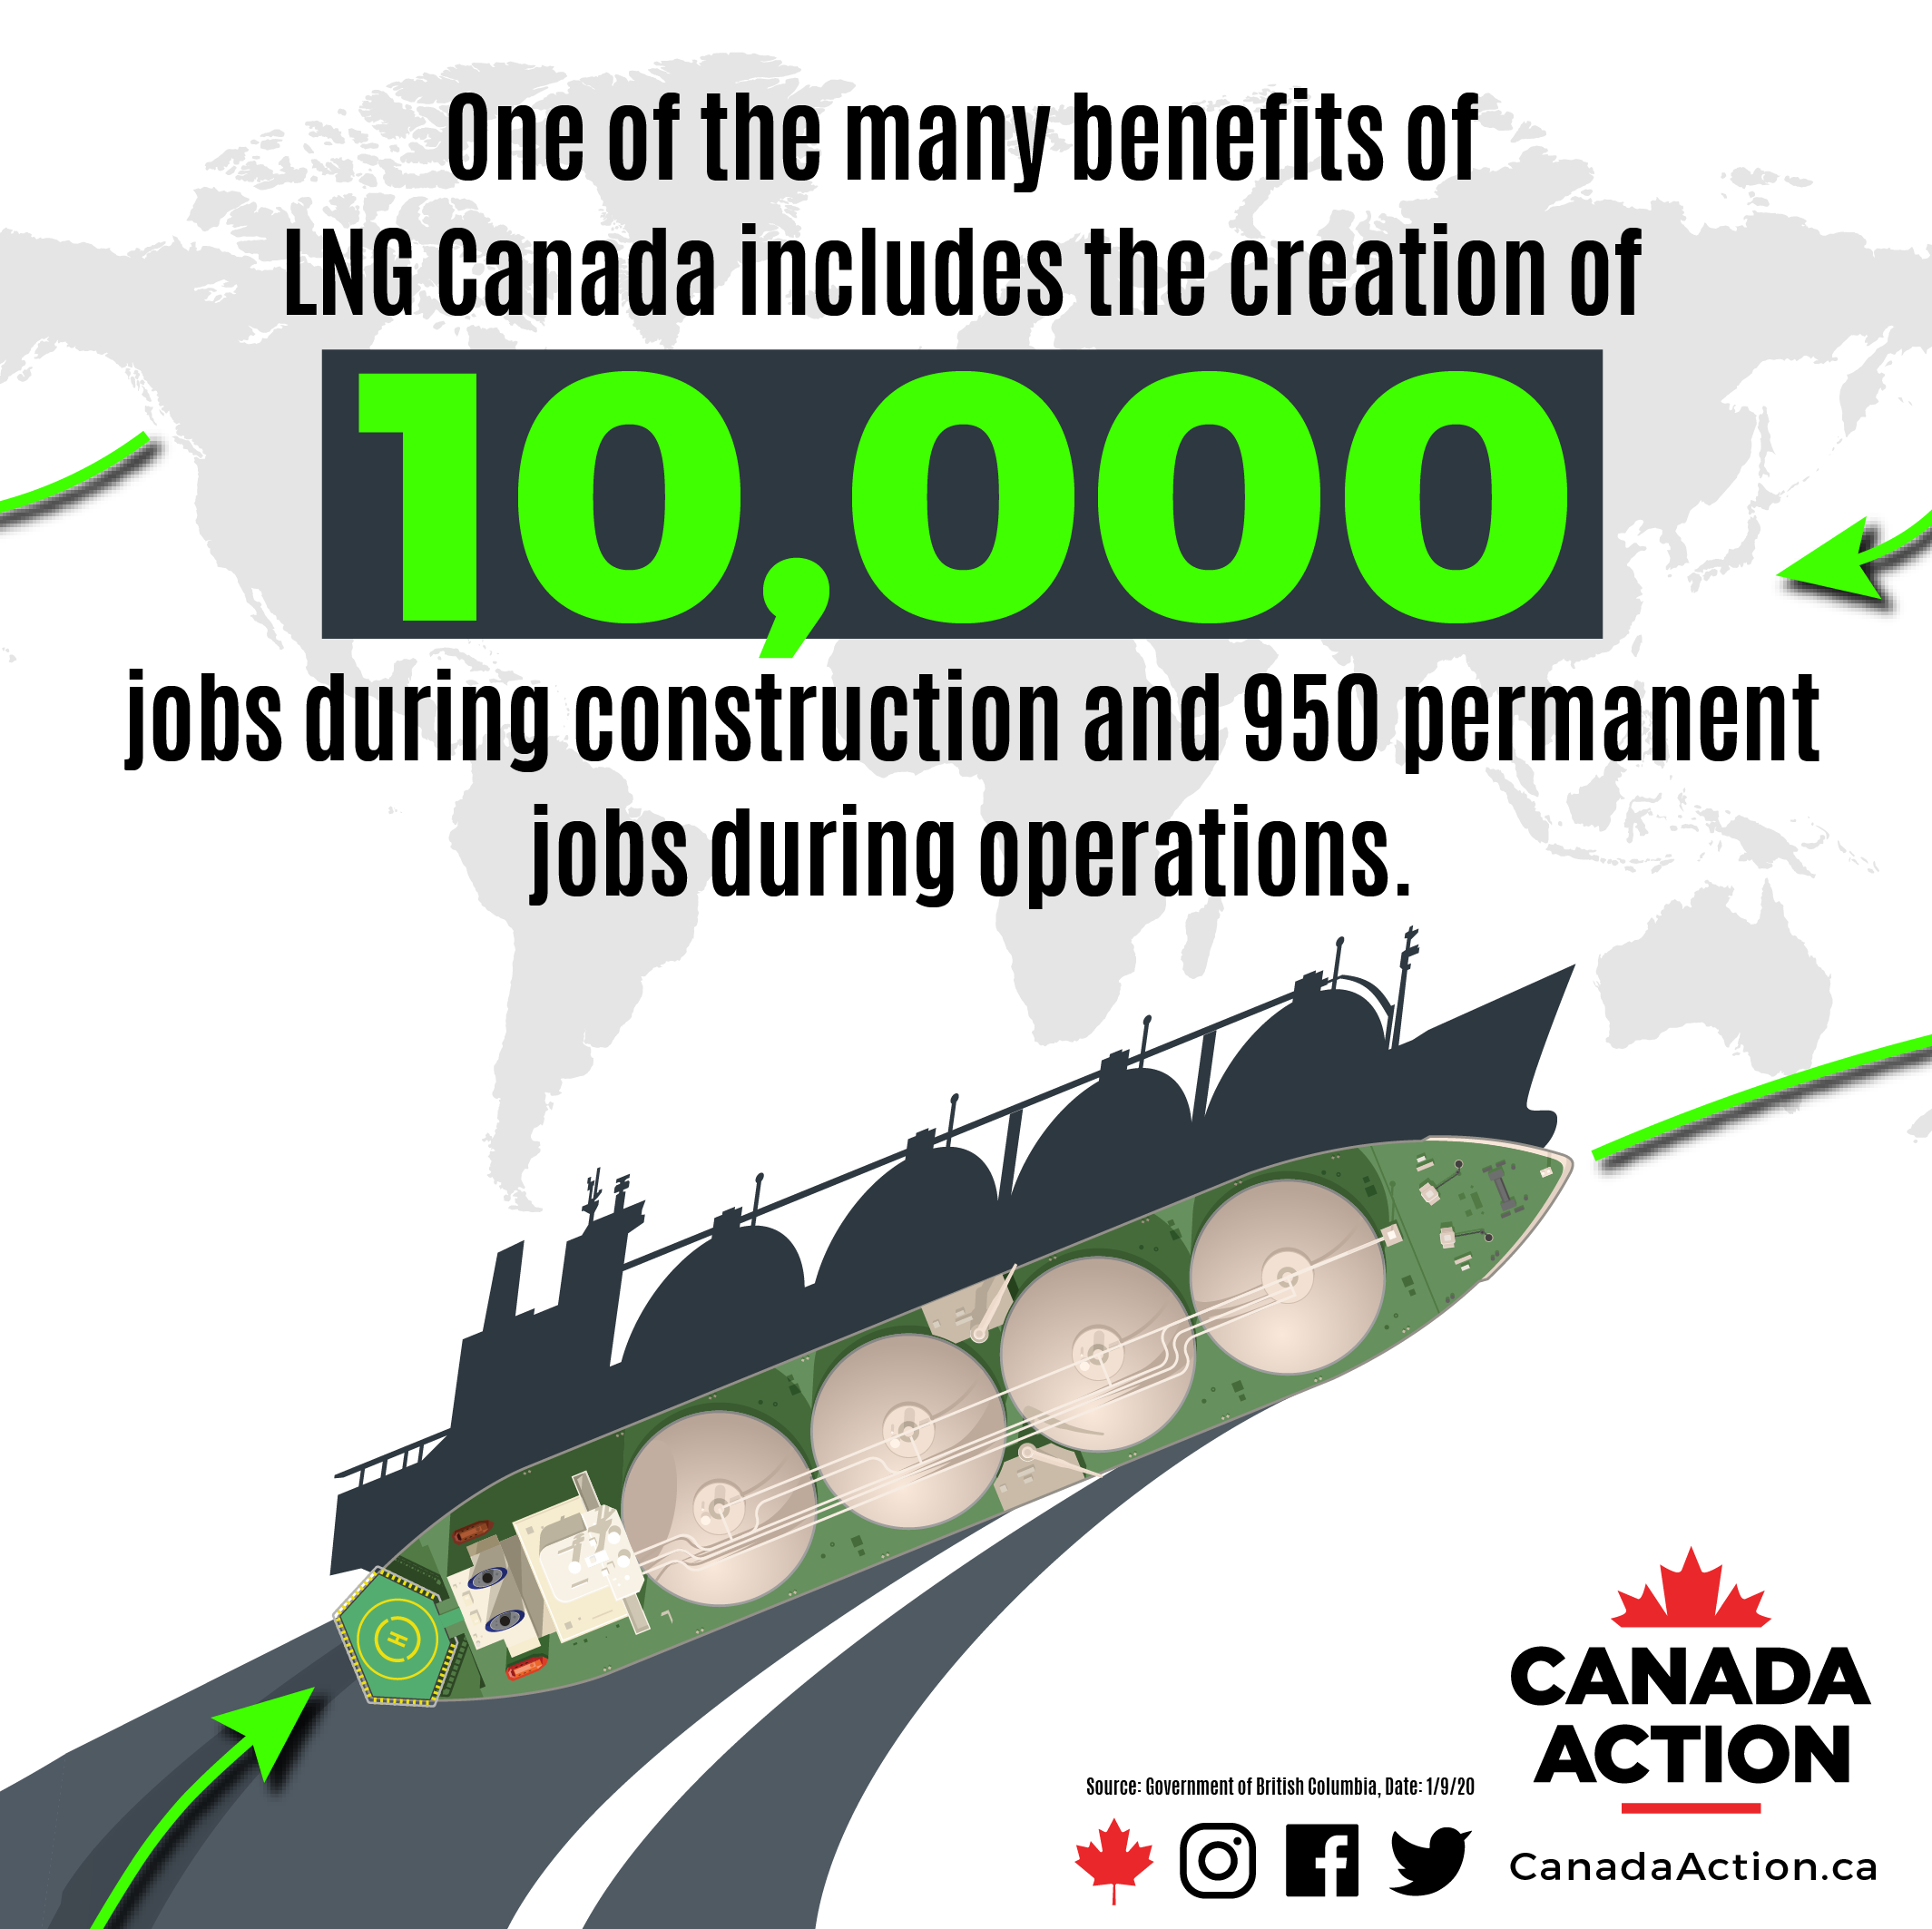 LNG Canada will create up to 10,000 jobs during construction